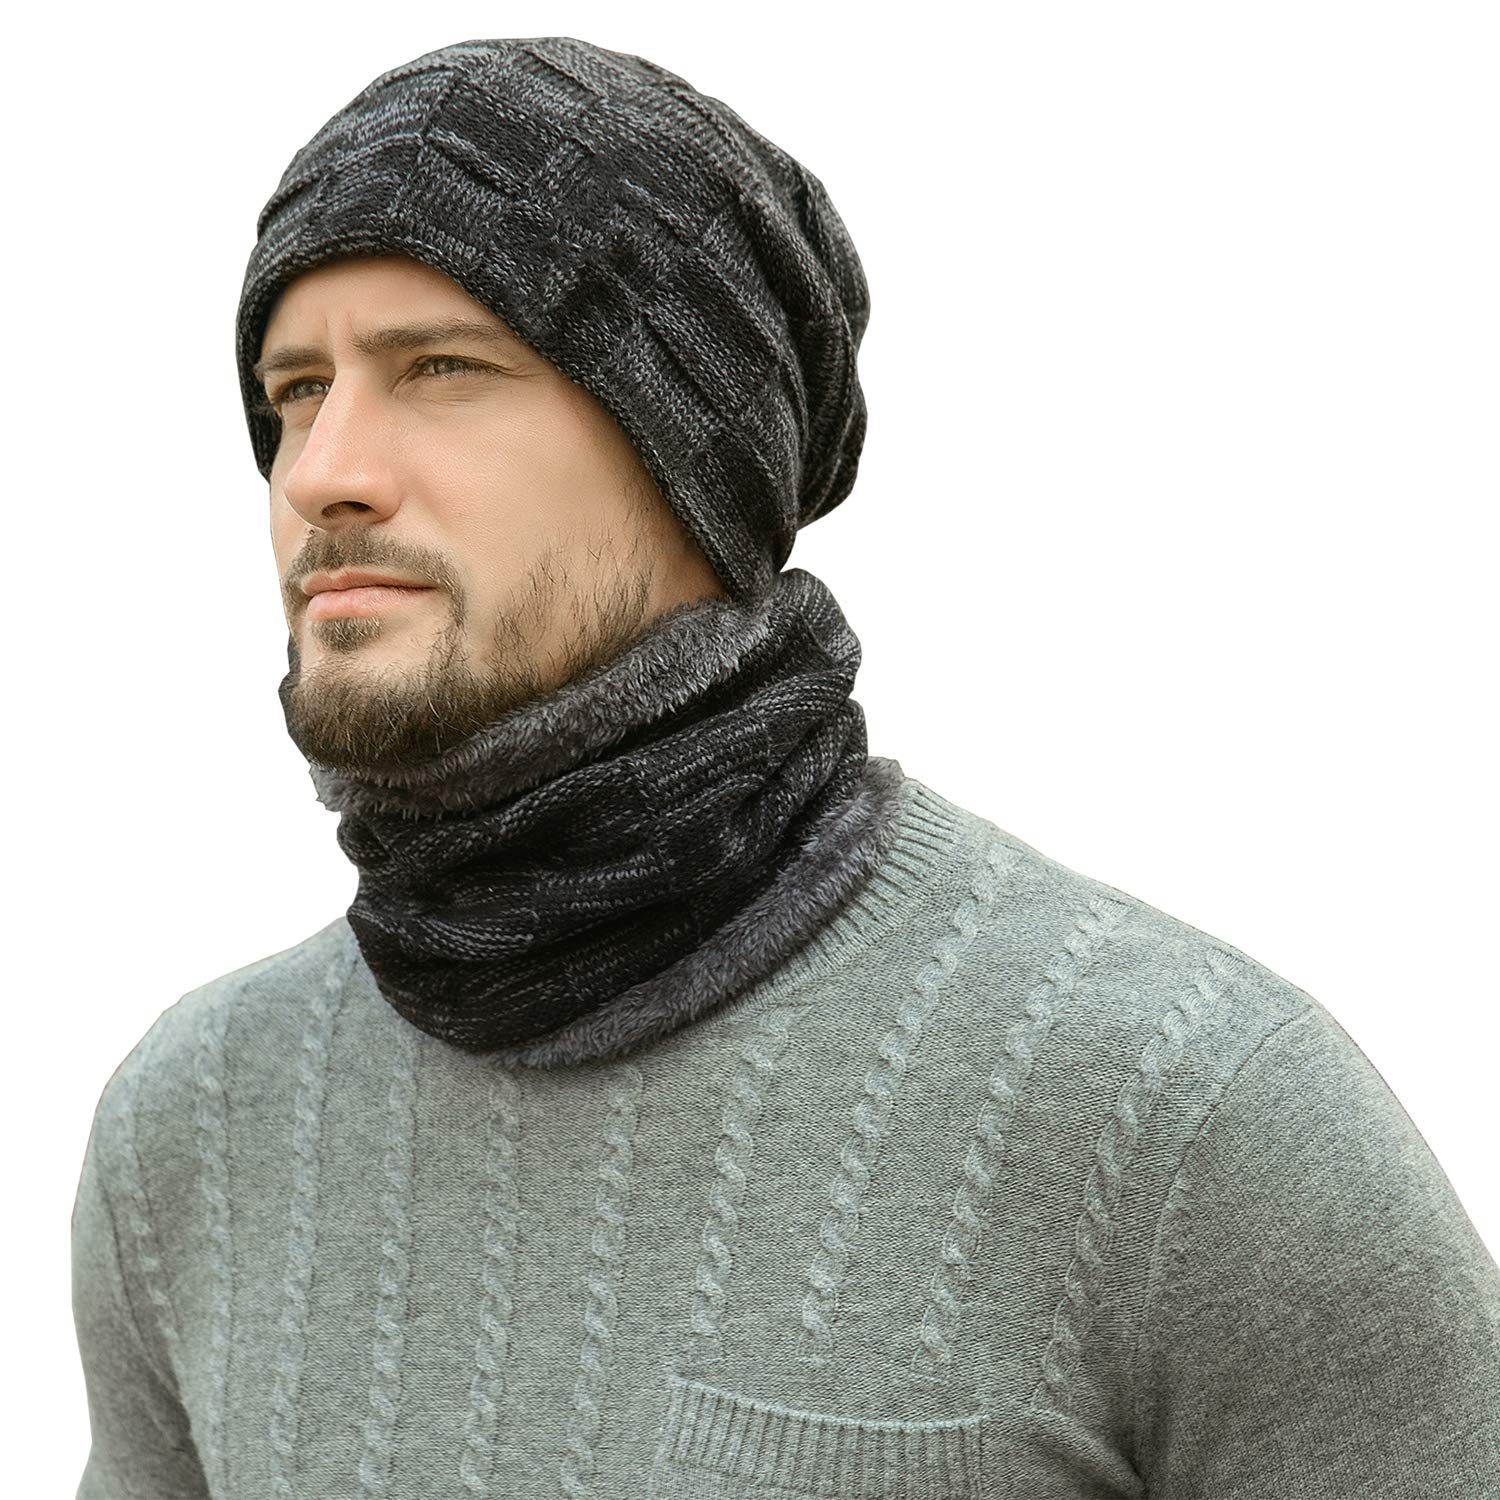 6c2a5af33677b Winter Beanie Hats Scarf Set Warm Knit Hats Skull Cap Neck Warmer with  Thick Fleece Lined Winter Hat & Scarf for Men Women Black at Amazon Men's  Clothing ...